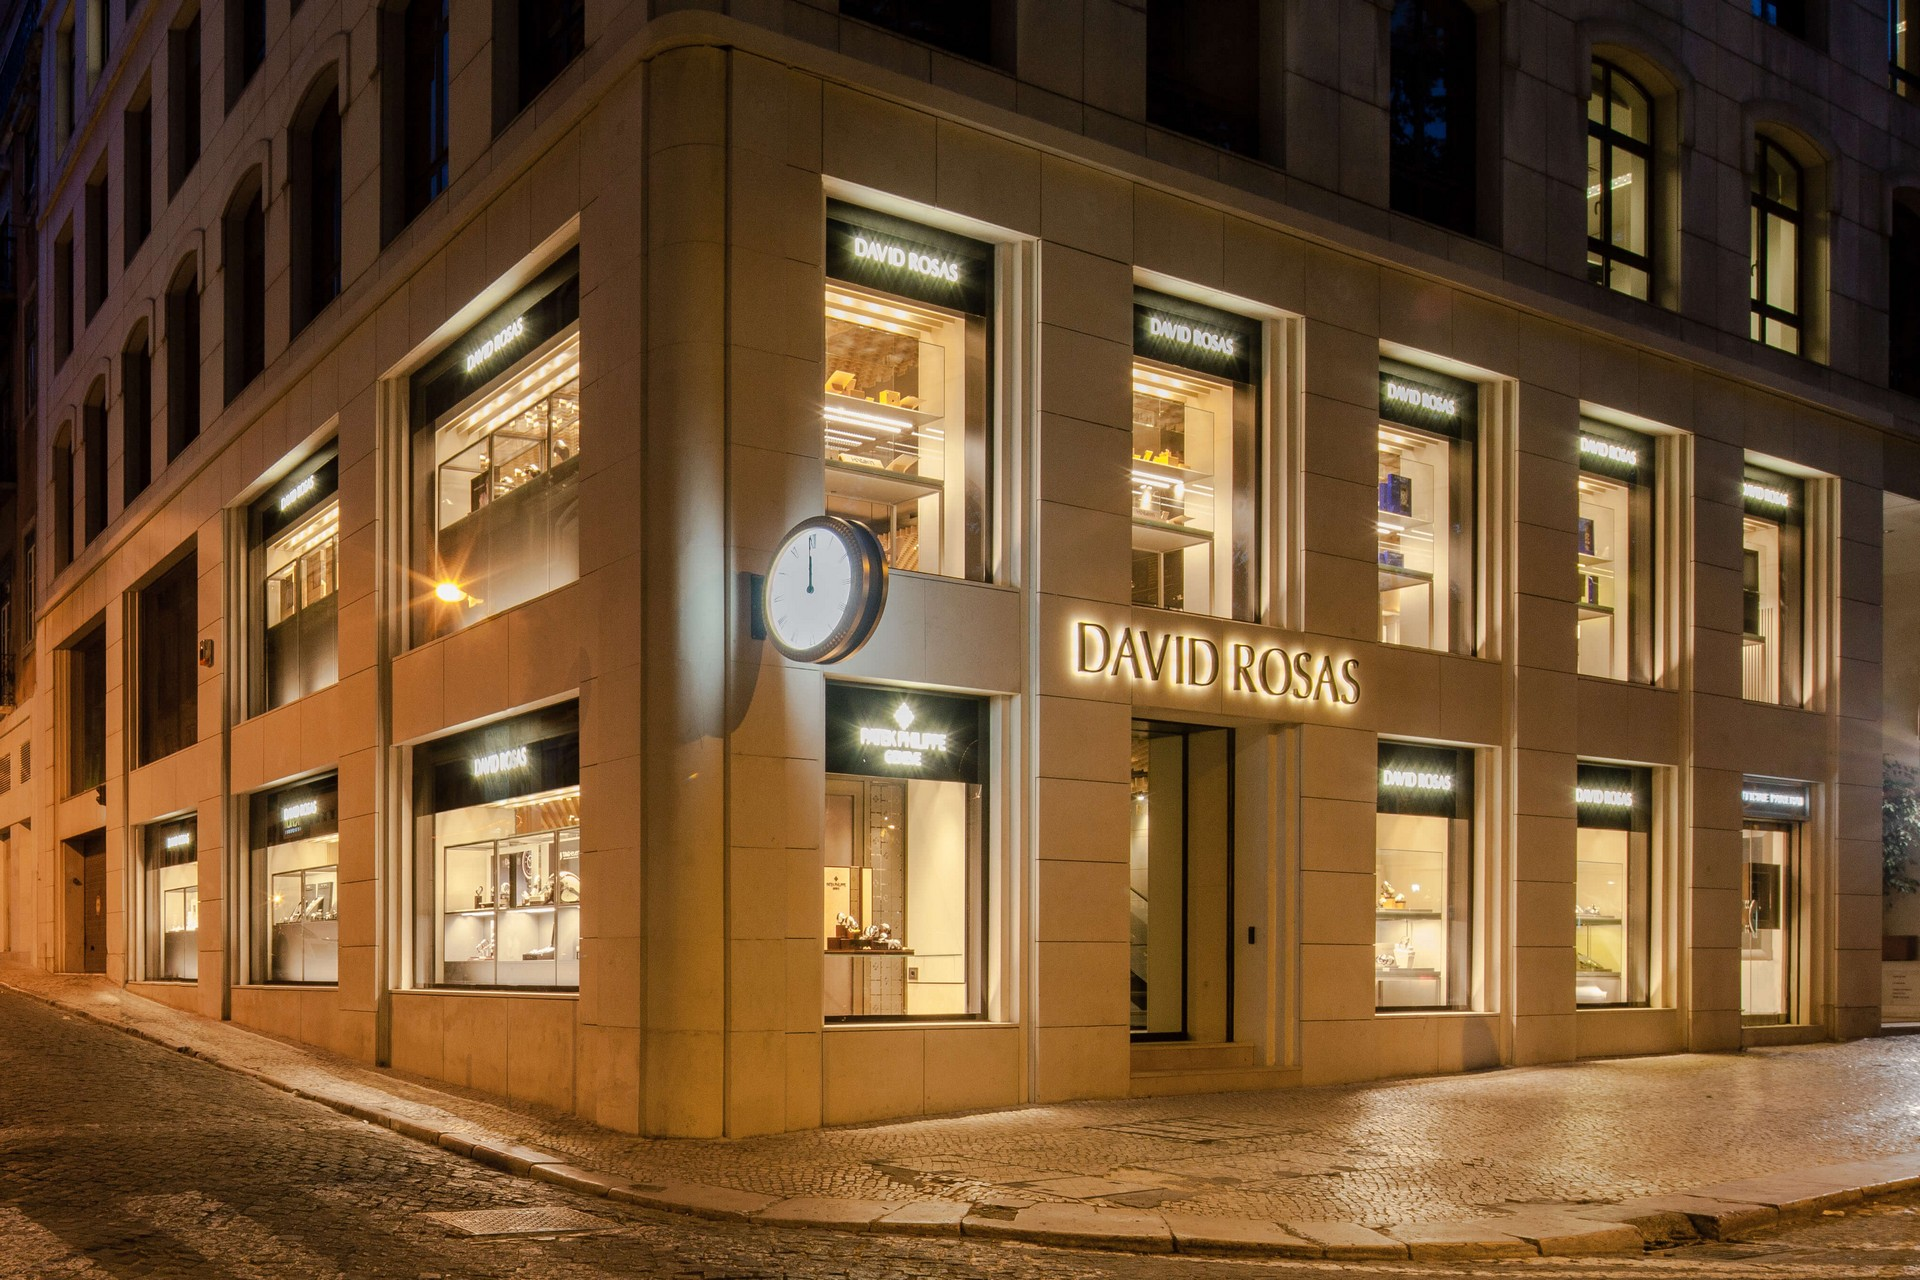 Portuguese Luxury Stores You Can't Miss In Lisbon: David Rosas portuguese luxury stores Portuguese Luxury Stores You Can't Miss In Lisbon Portuguese Luxury Stores You Cant Miss In Lisbon 1